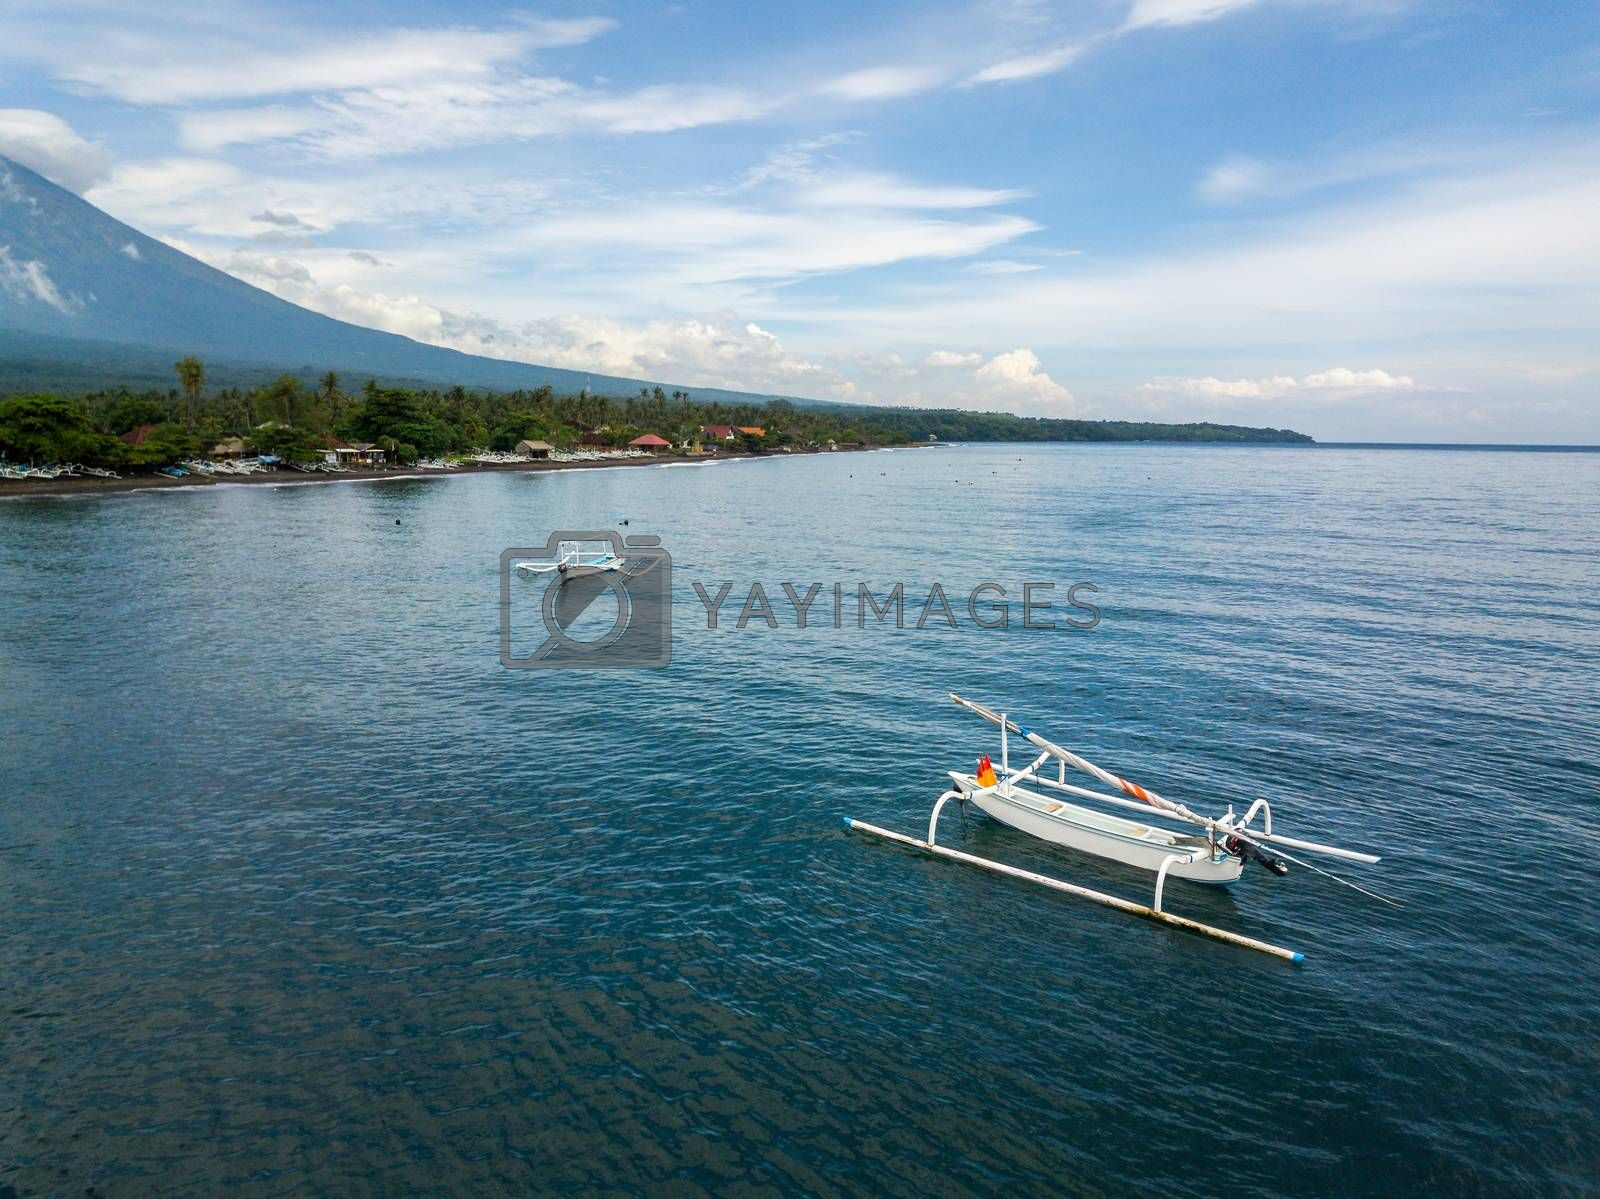 Aerial view of traditional fishing boats called jukung in Bali, Indonesia.